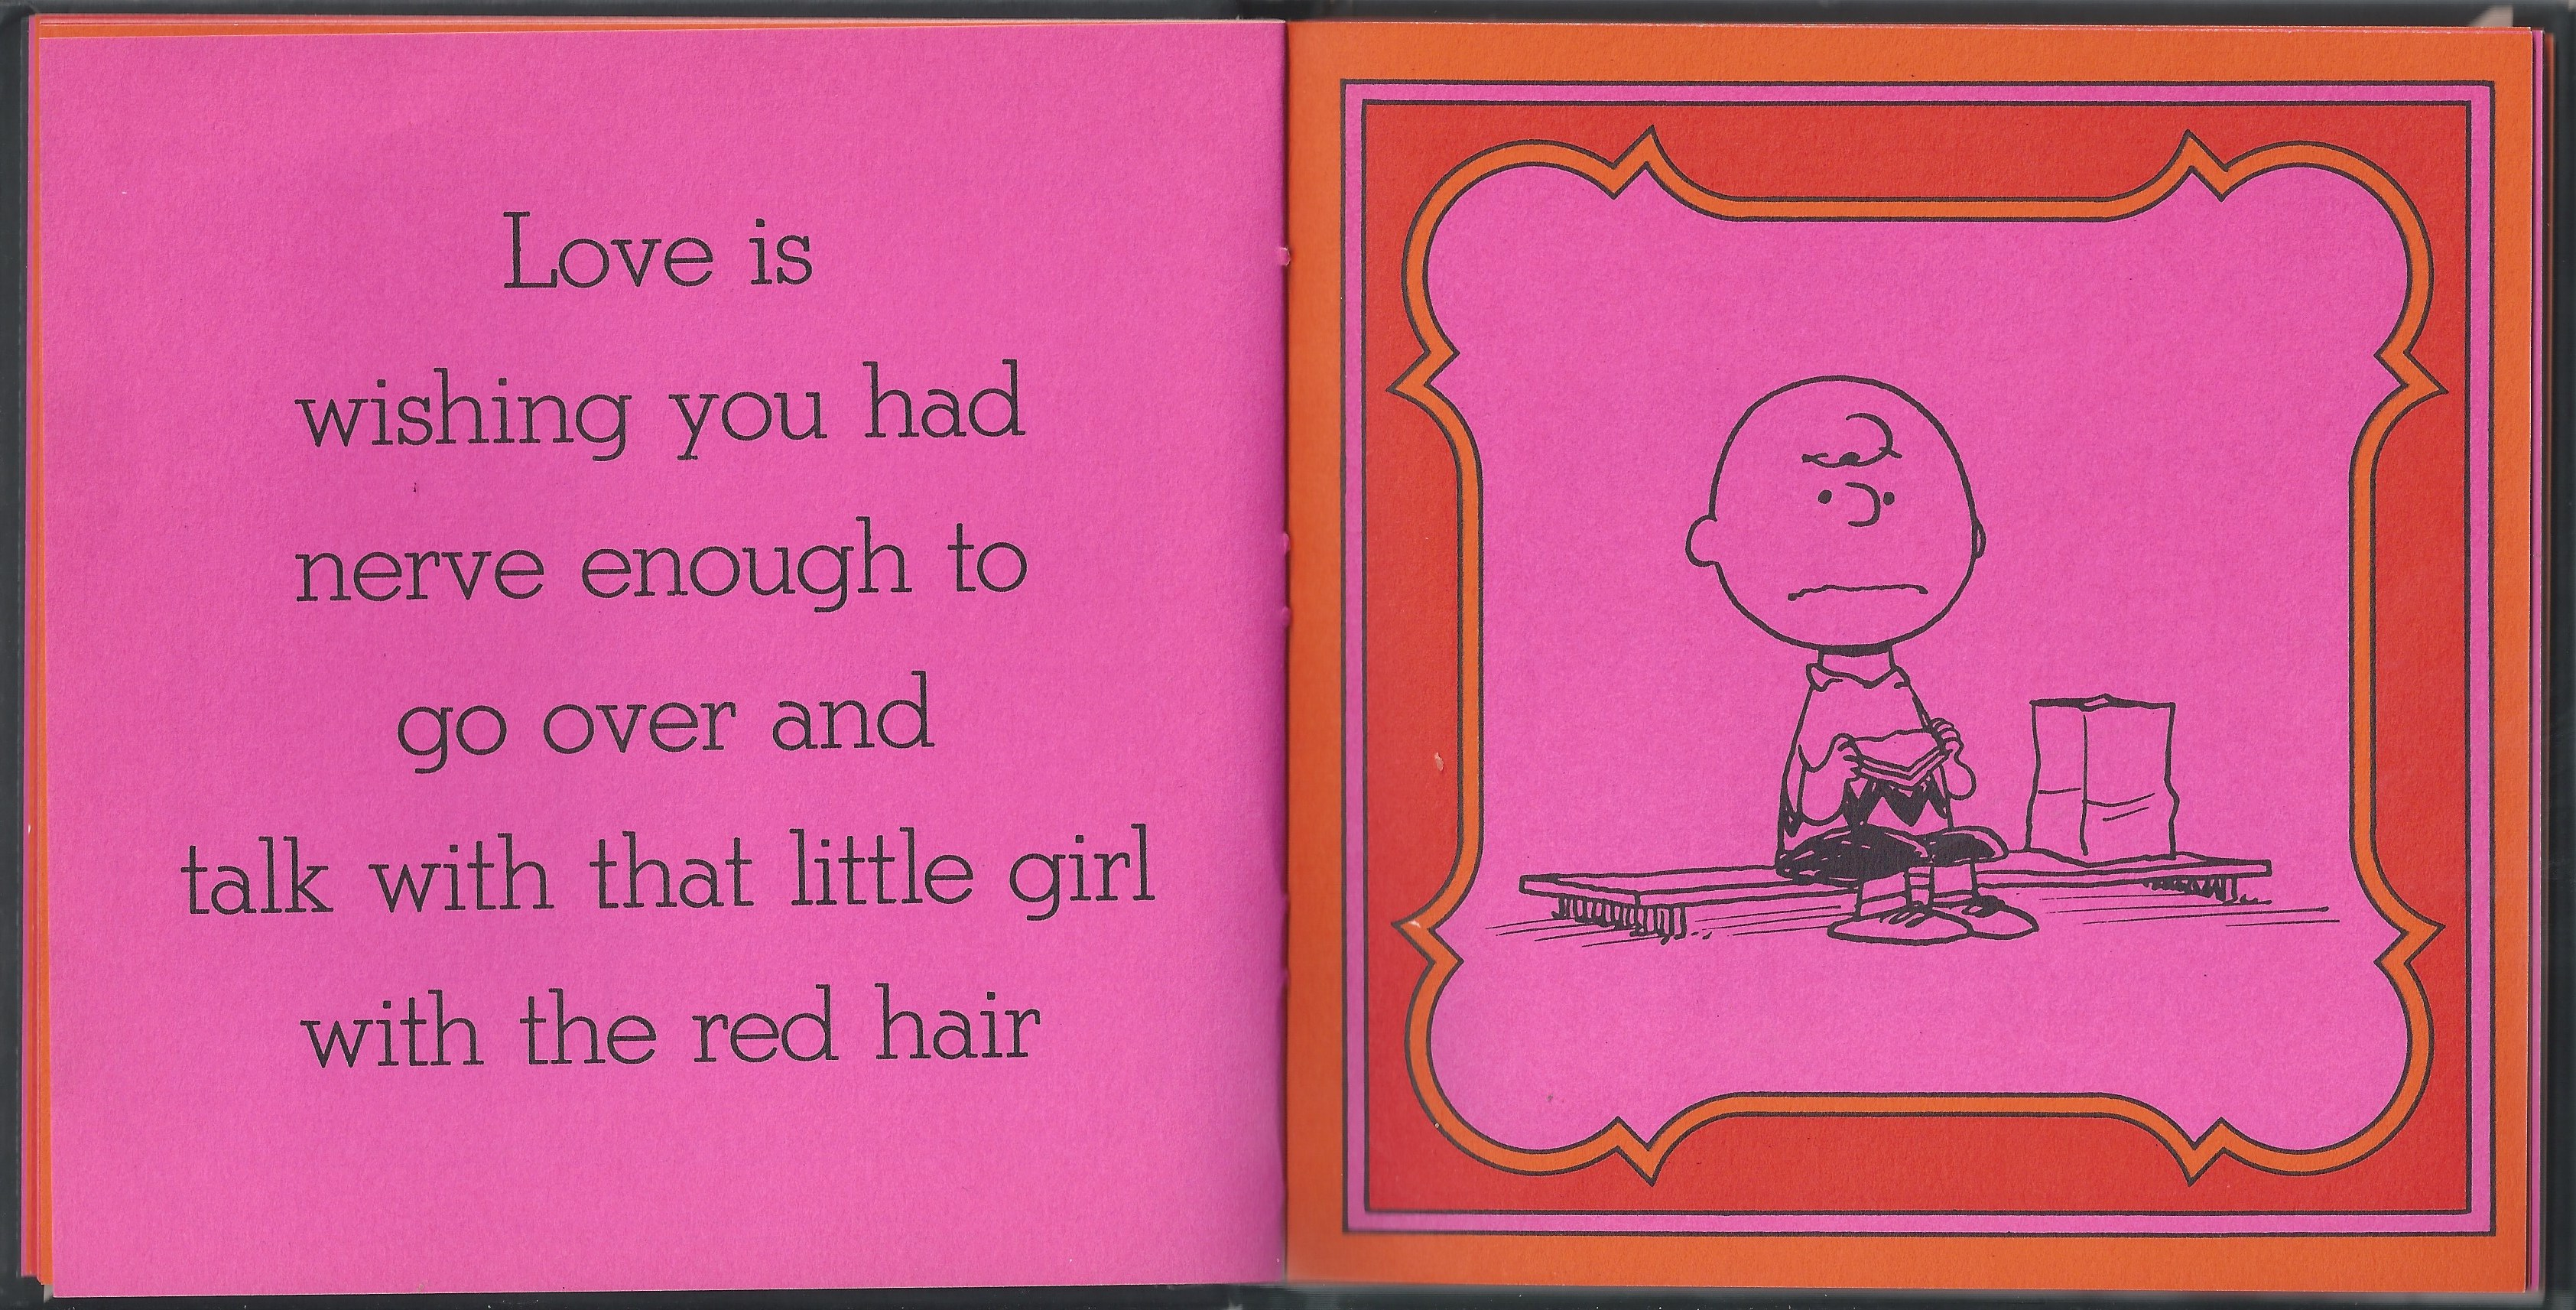 Love Is Peanuts Charlie Brown Snoopy Lucy by Charles M. Schulz